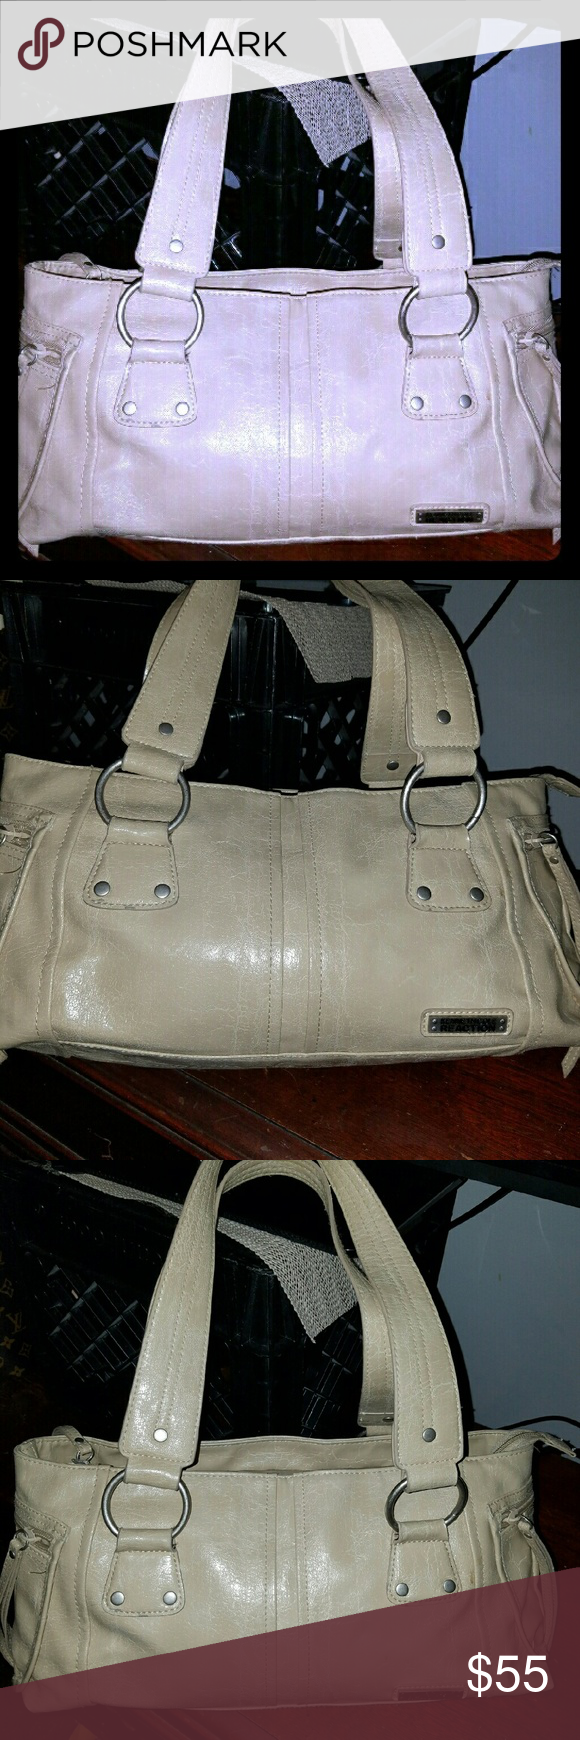 Kenneth Cole reaction bag Mint condition..Looks new ..Kenneth Cole reaction handbag ...Super super cute but I need a big bag Kenneth Cole Reaction Bags Shoulder Bags